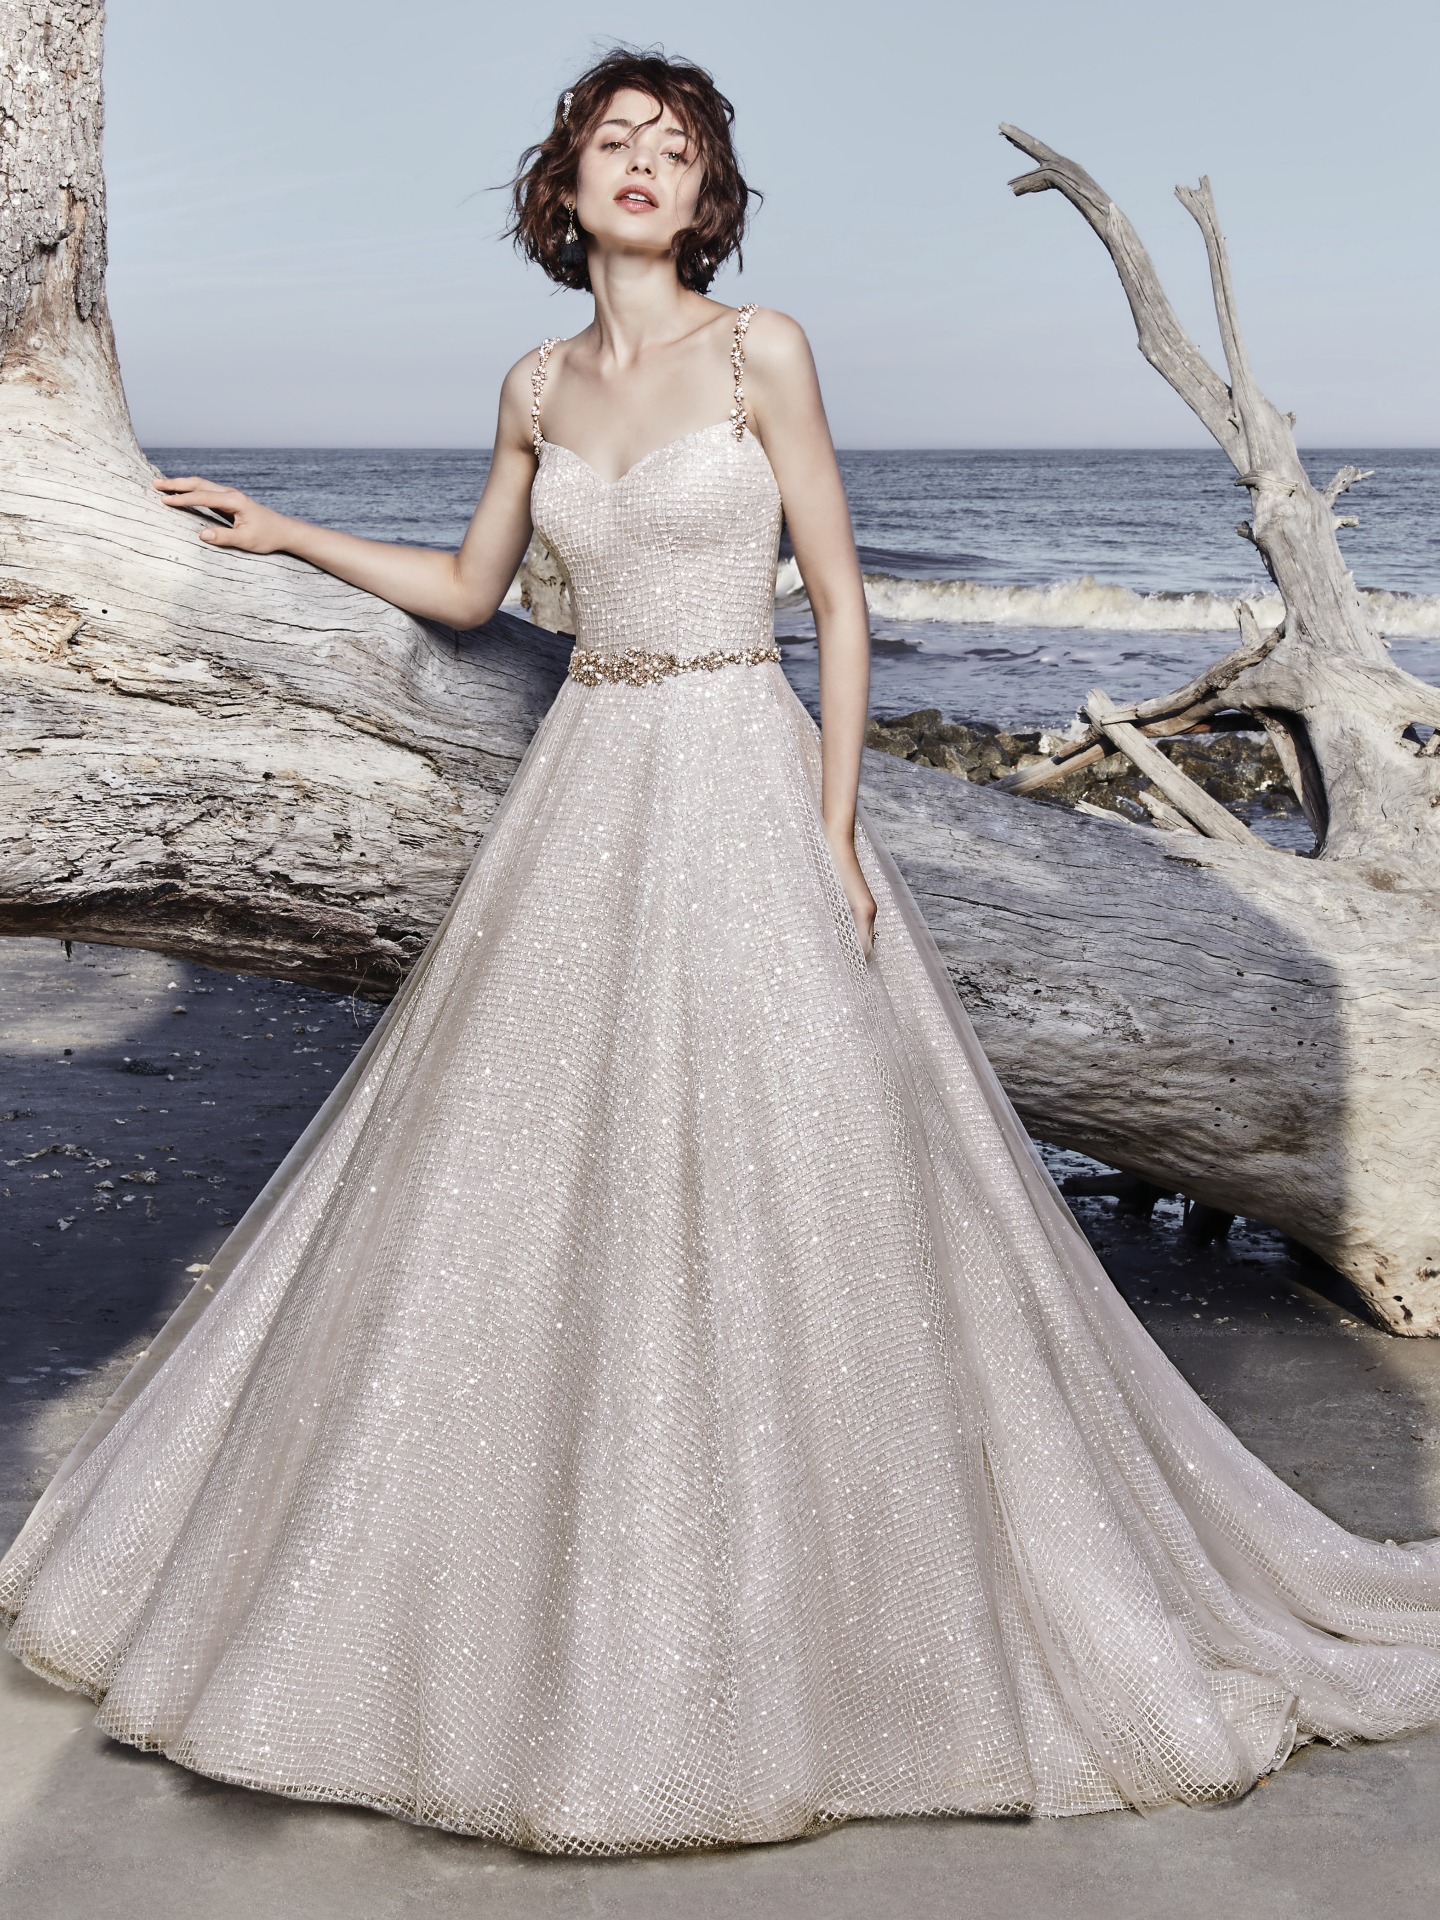 The Latest Glitzy, Red-Carpet-Ready Styles from Sottero and Midgley - Vidette